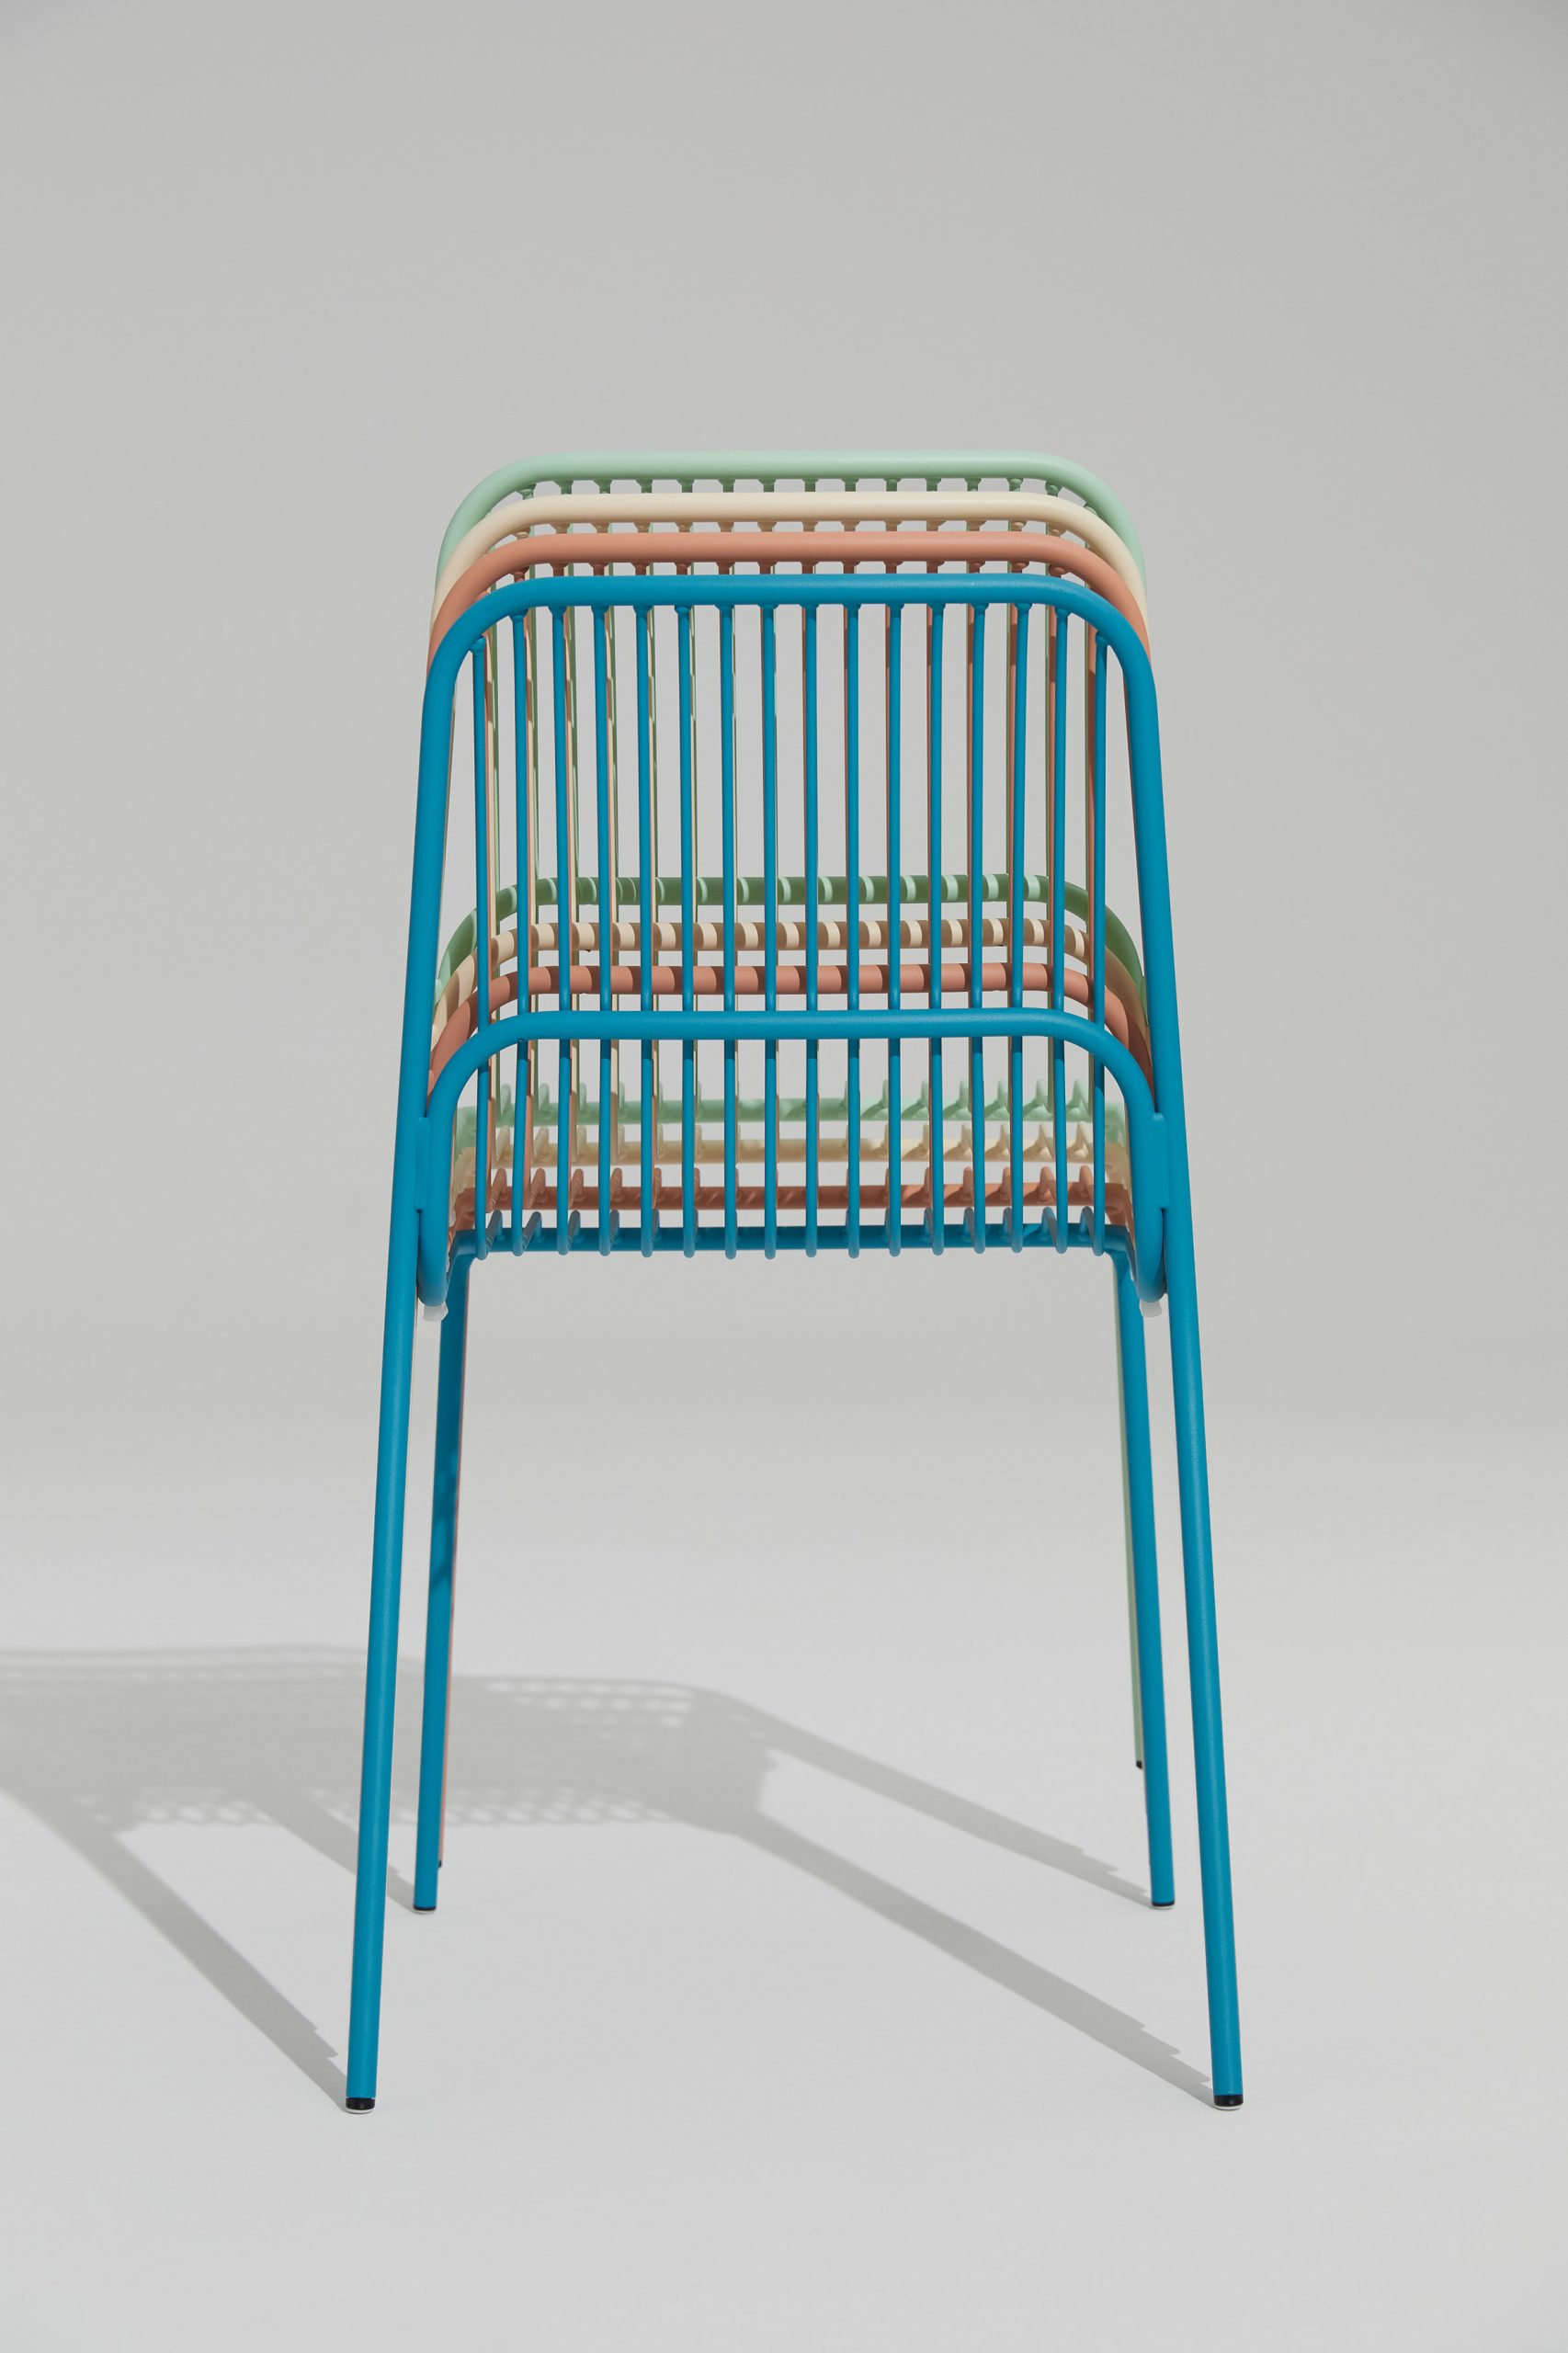 Stacked Crop outdoor chairs by Benjamin Hubert